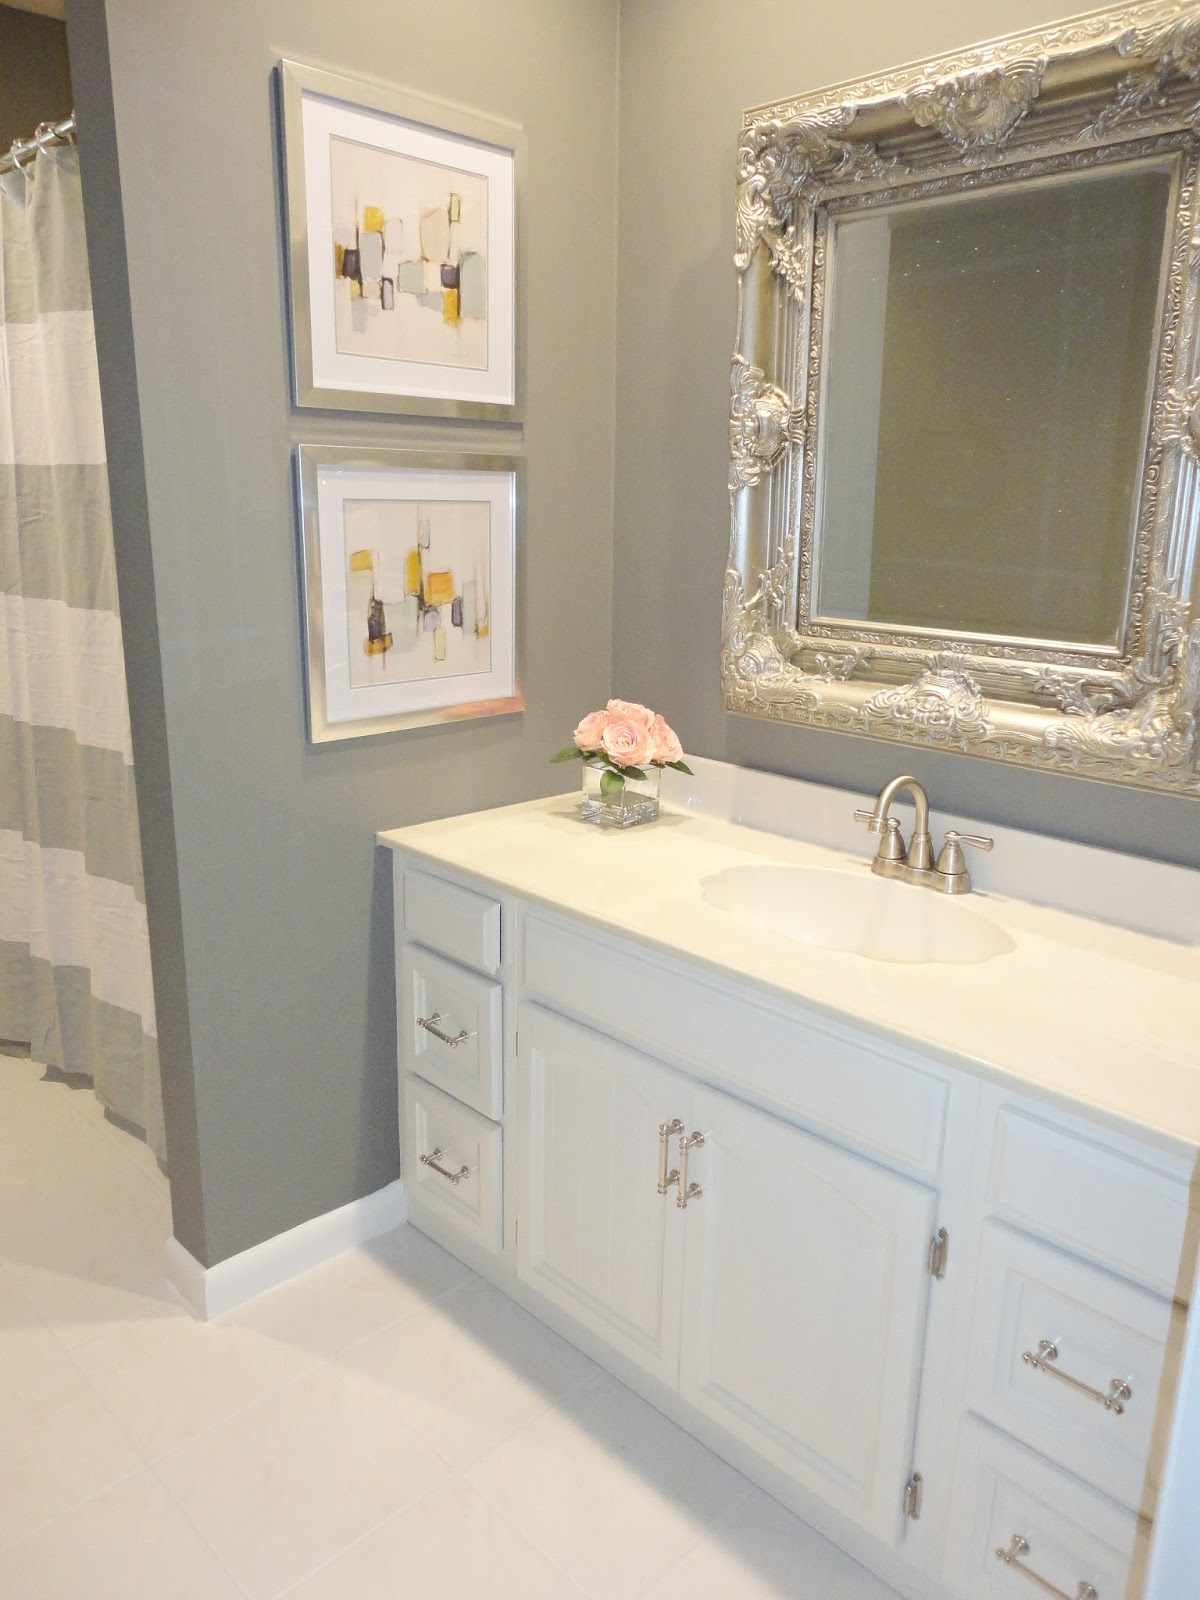 Livelovediy diy bathroom remodel on a budget for Redo bathroom